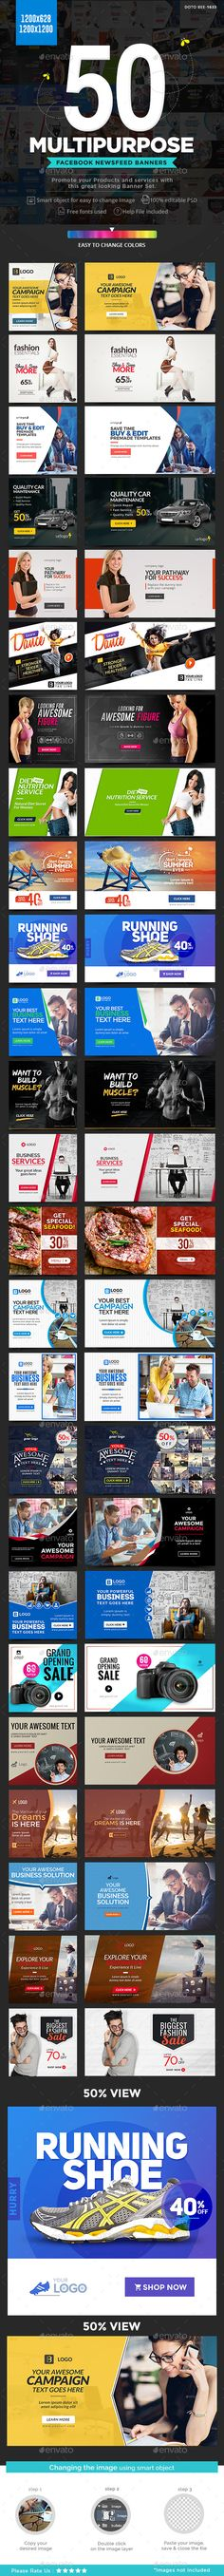 Facebook Newsfeed Ad Banners - 25 Designs - 2 Sizes Each